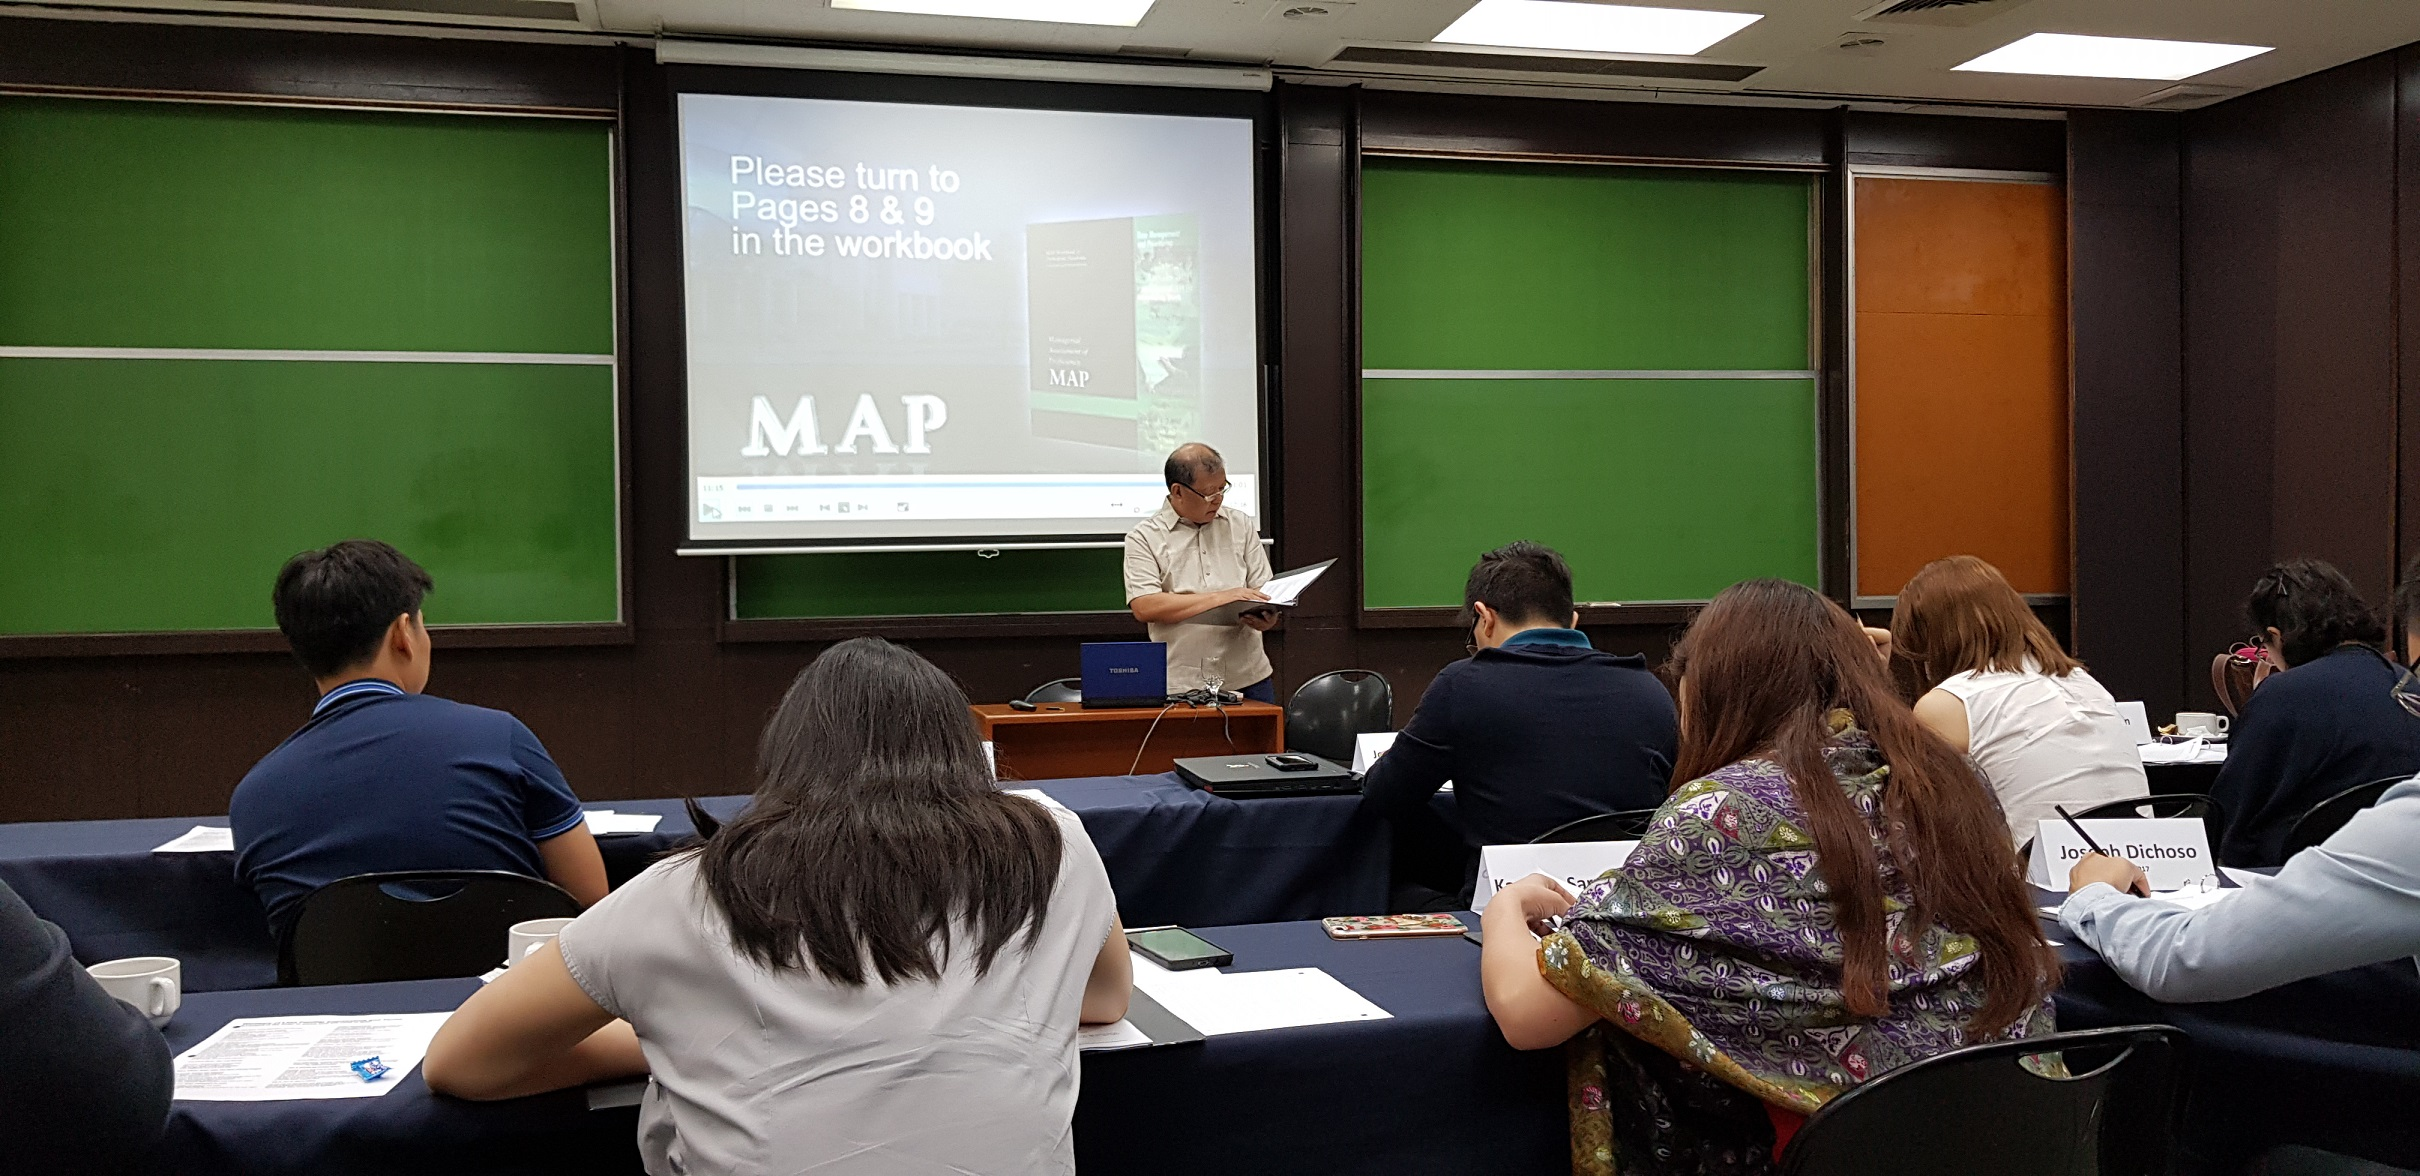 MDP alumnus Galo Ignacio speaks in front of recent AIM graduates during Day 1 of the MAP session.